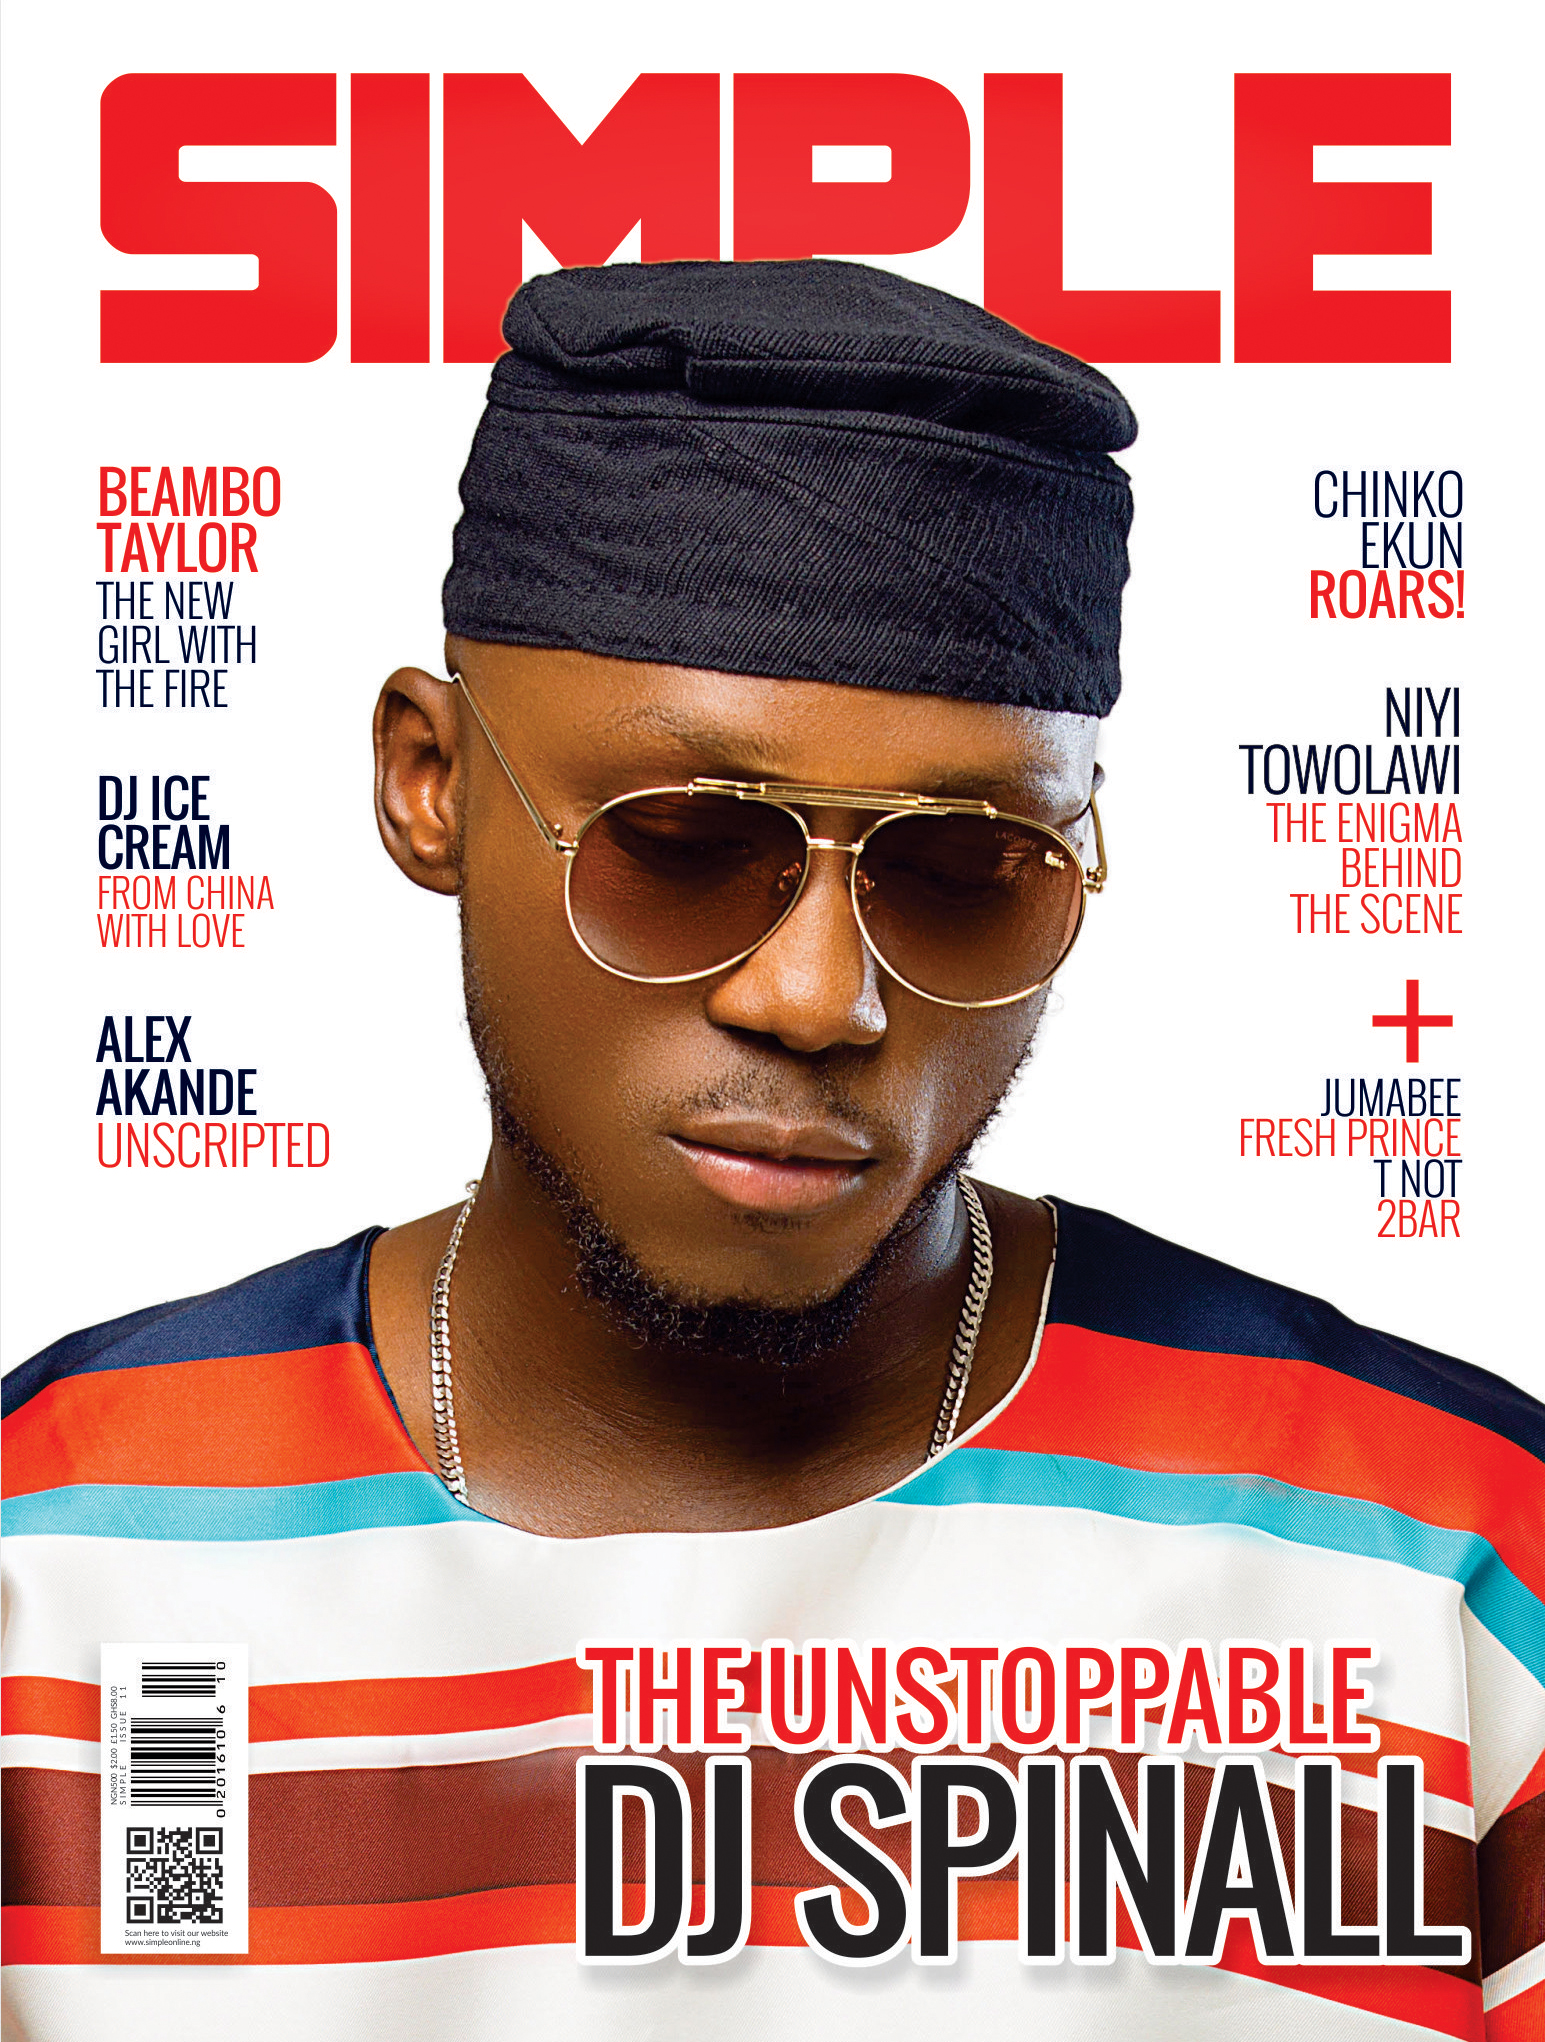 THE CAP!!! DJ SPINALL COVERS THE LATEST ISSUE OF SIMPLE MAGAZINE.